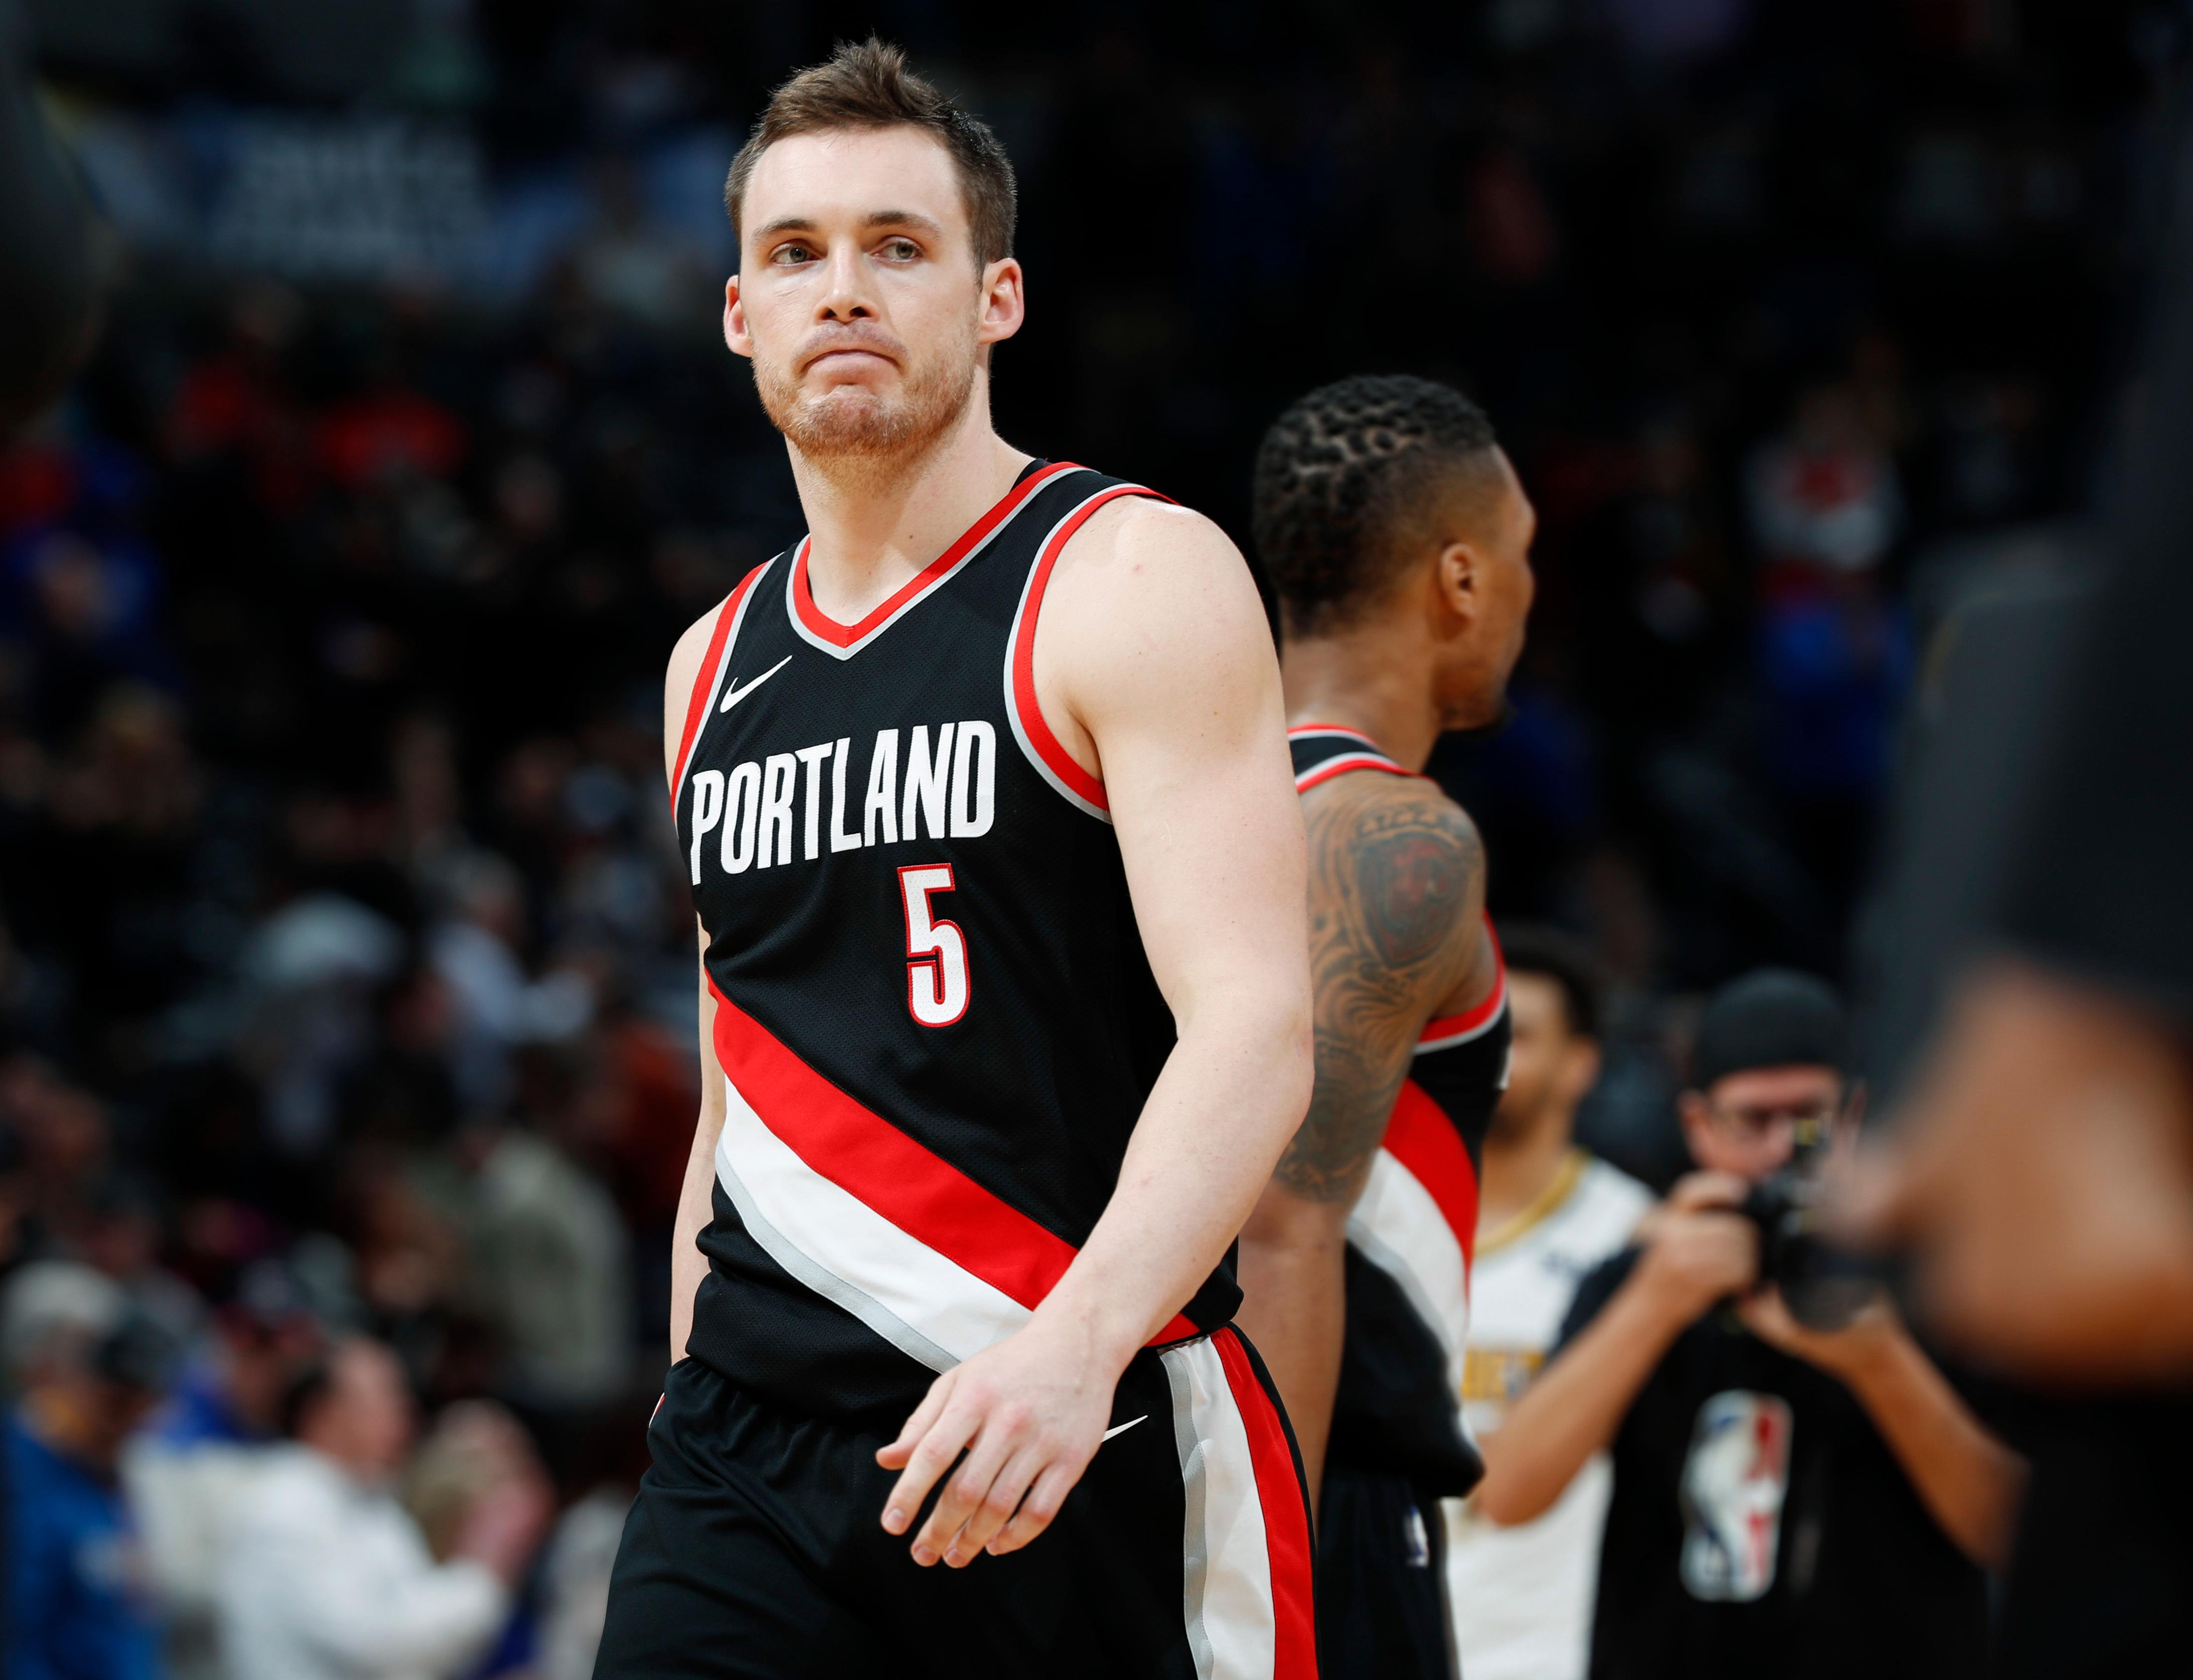 Portland Trail Blazers guard Pat Connaughton reacts as time runs out in the second half of an NBA basketball game against the Denver Nuggets Monday, Jan. 22, 2018, in Denver. The Nuggets 104-101. (AP Photo/David Zalubowski)